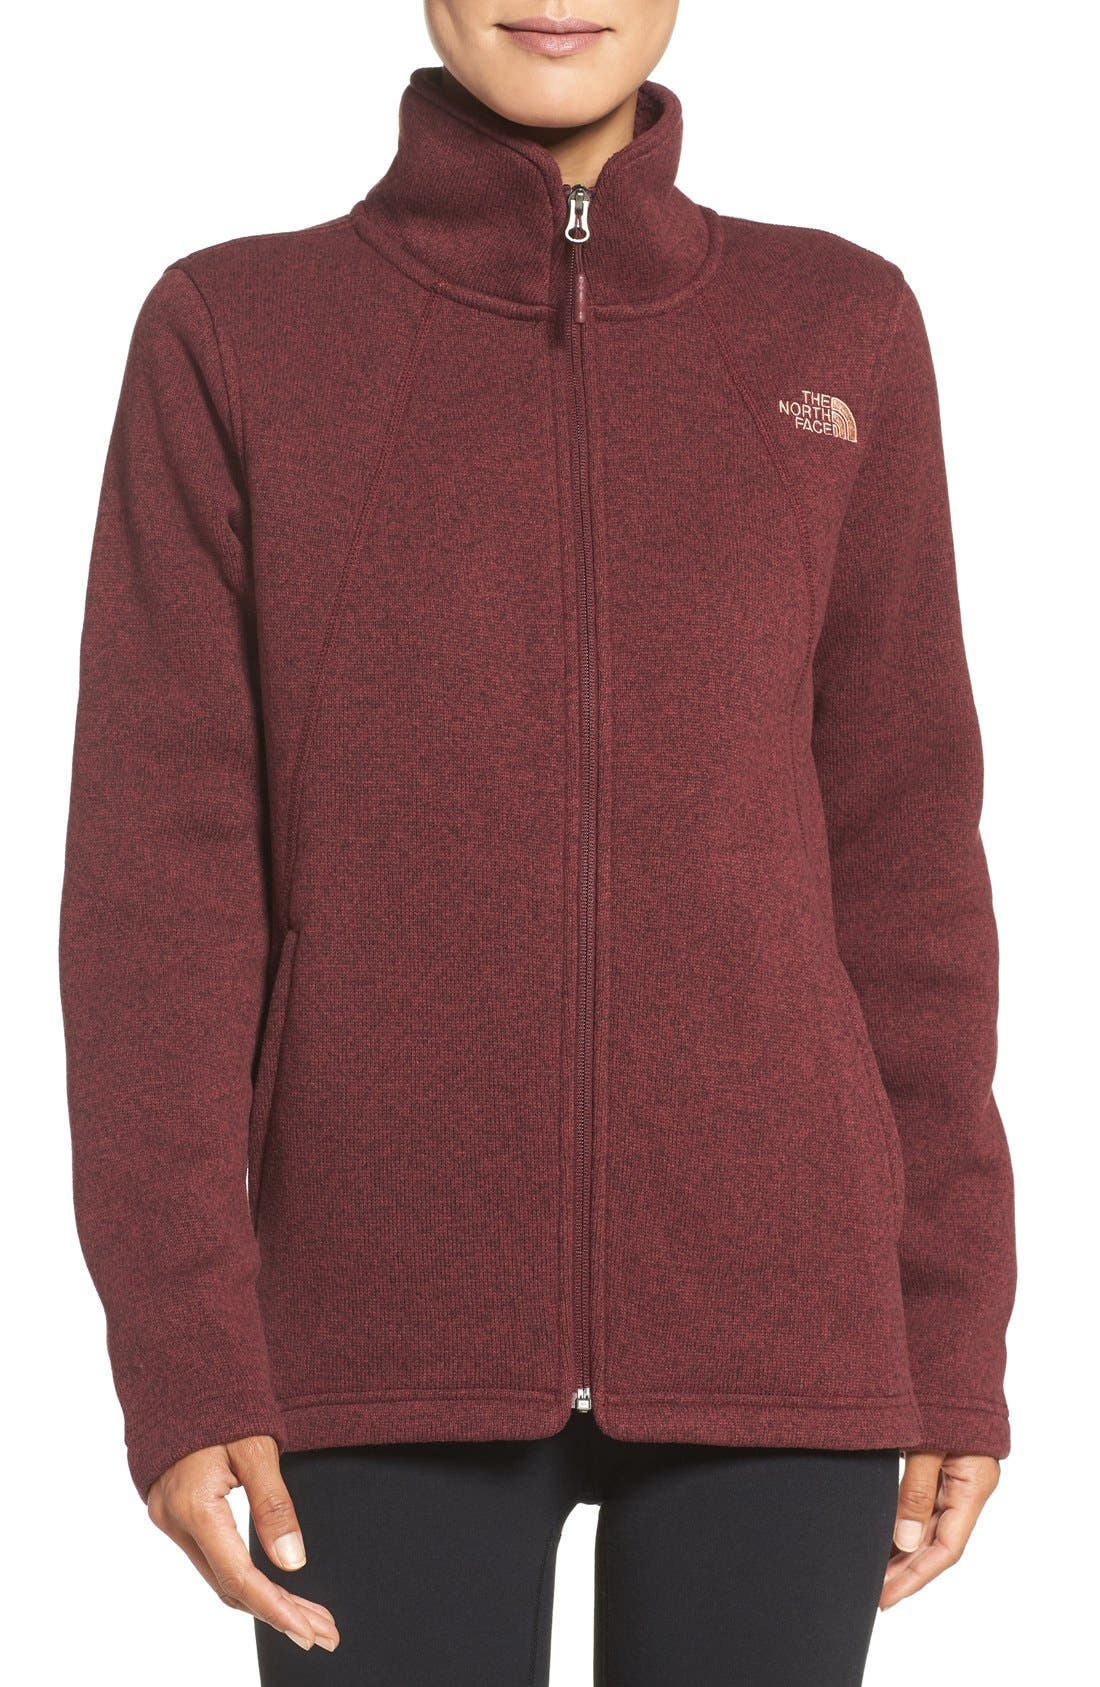 Alternate Image 1 Selected - The North Face Crescent Fleece Jacket